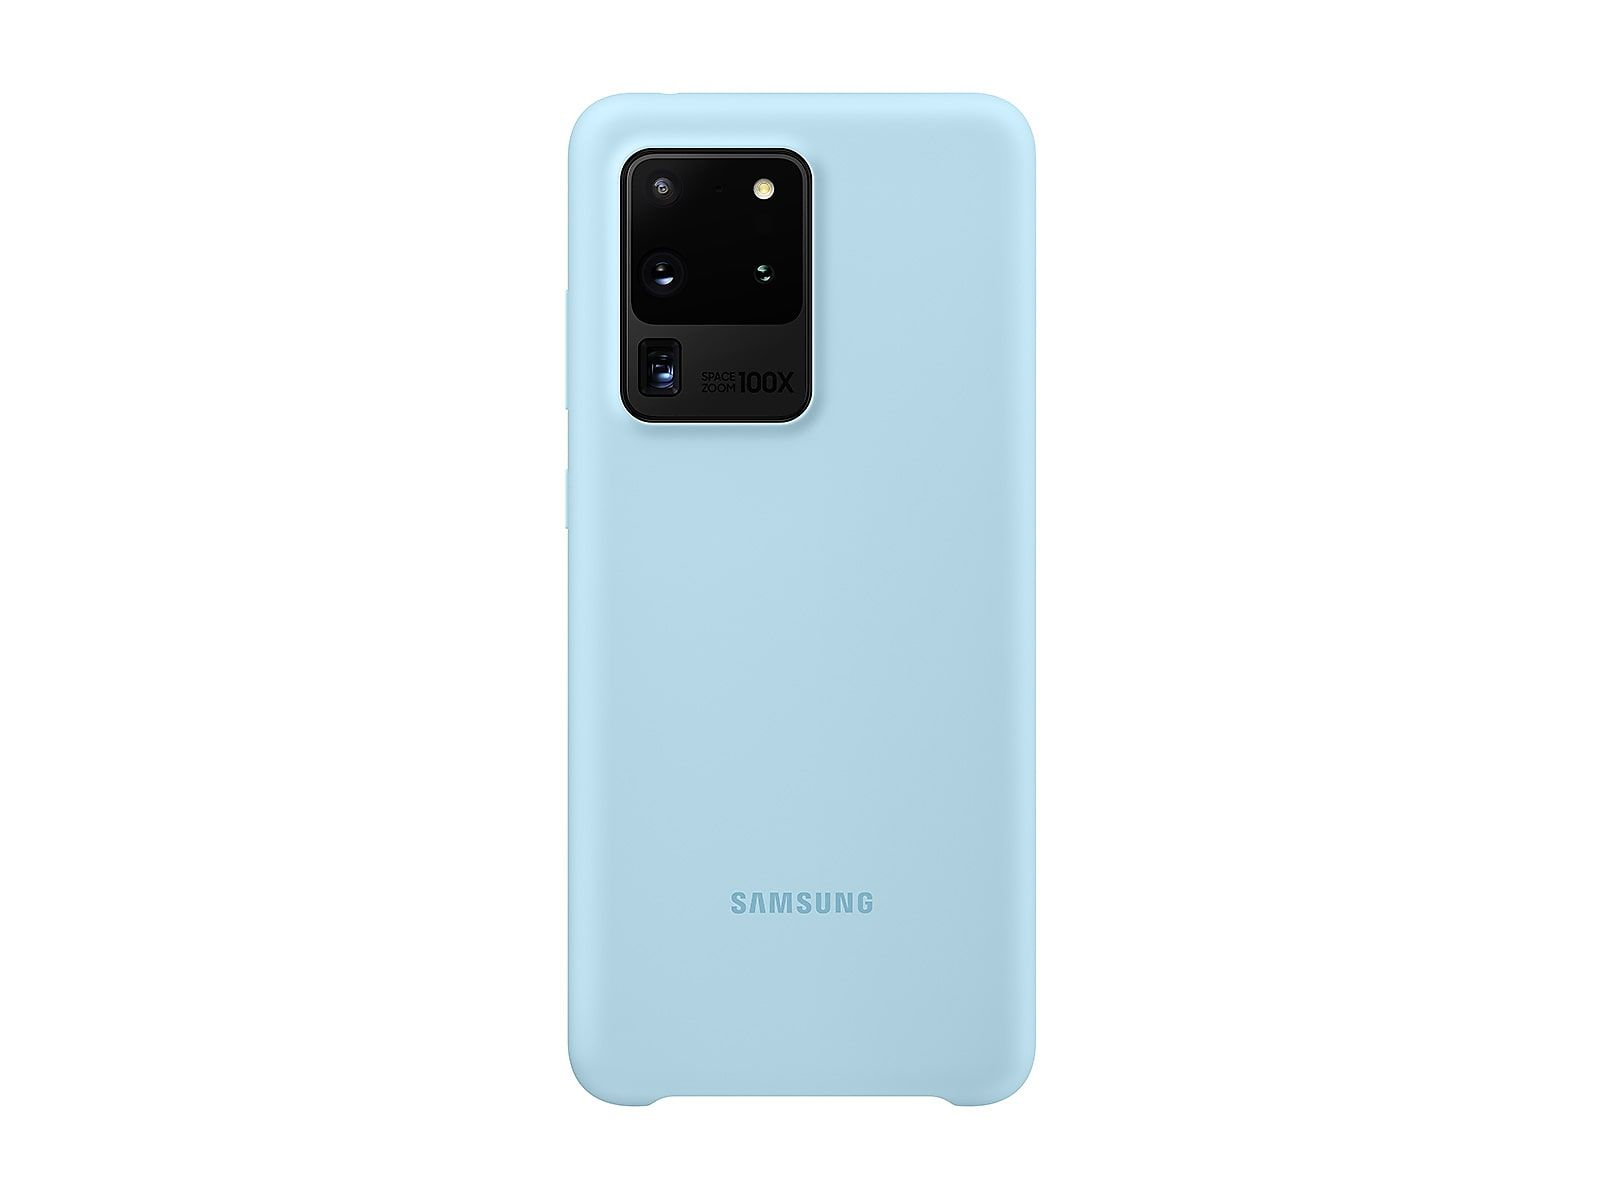 Galaxy S20 Ultra 5G Silicone cover Blue Mobile Accessories - EF-PG988TLEGUS | Samsung US